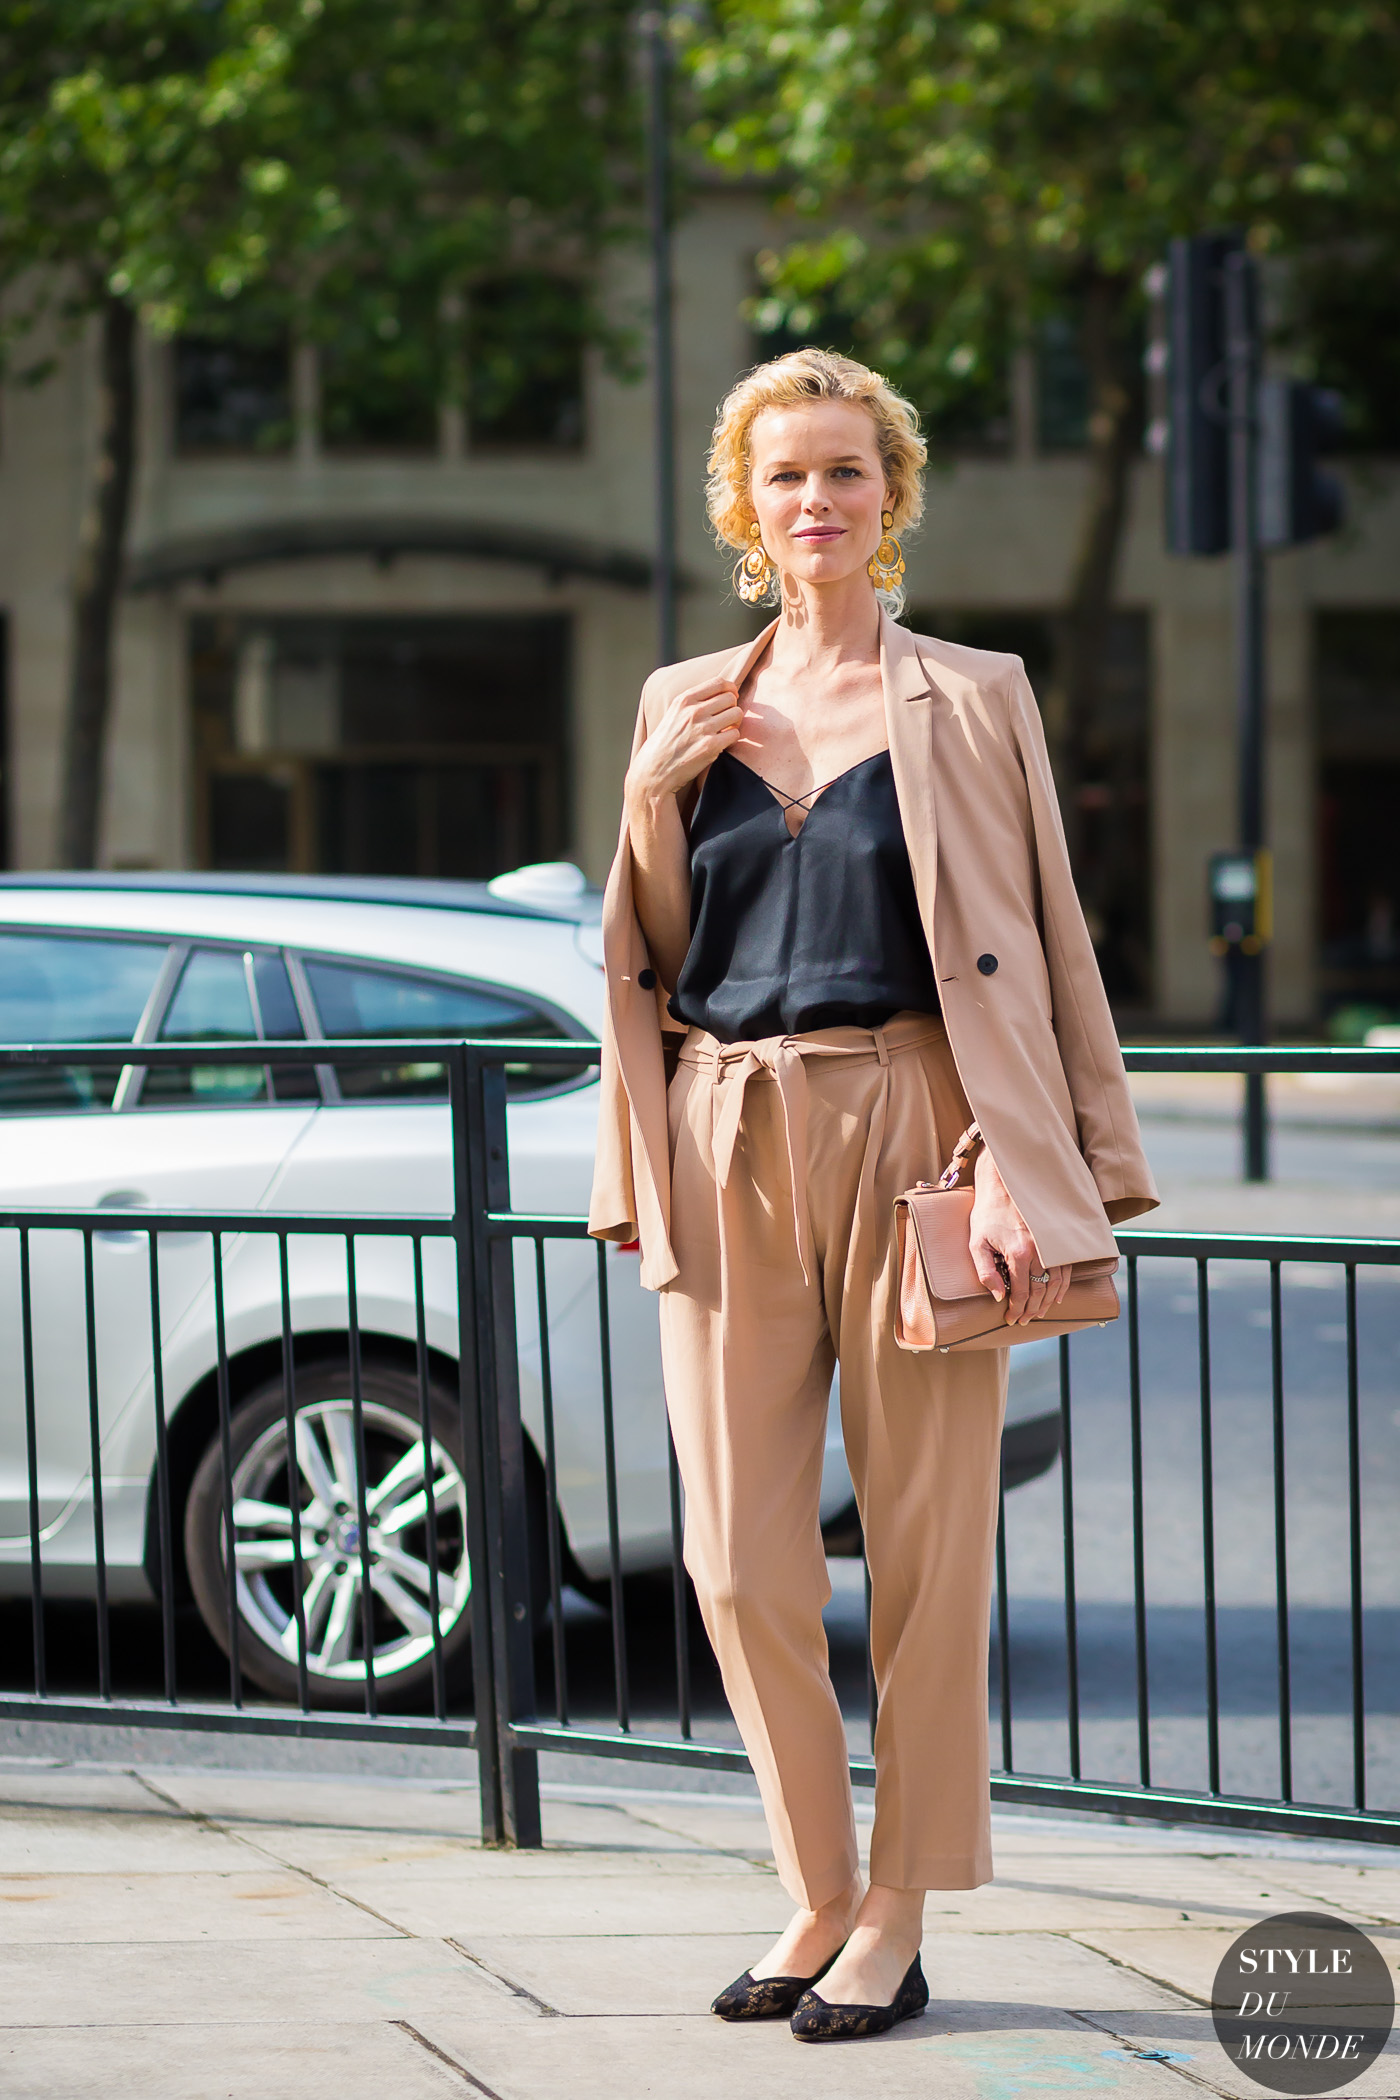 Eva Herzigova afuera de London Men's Fashion Week. Foto: Style du Monde.